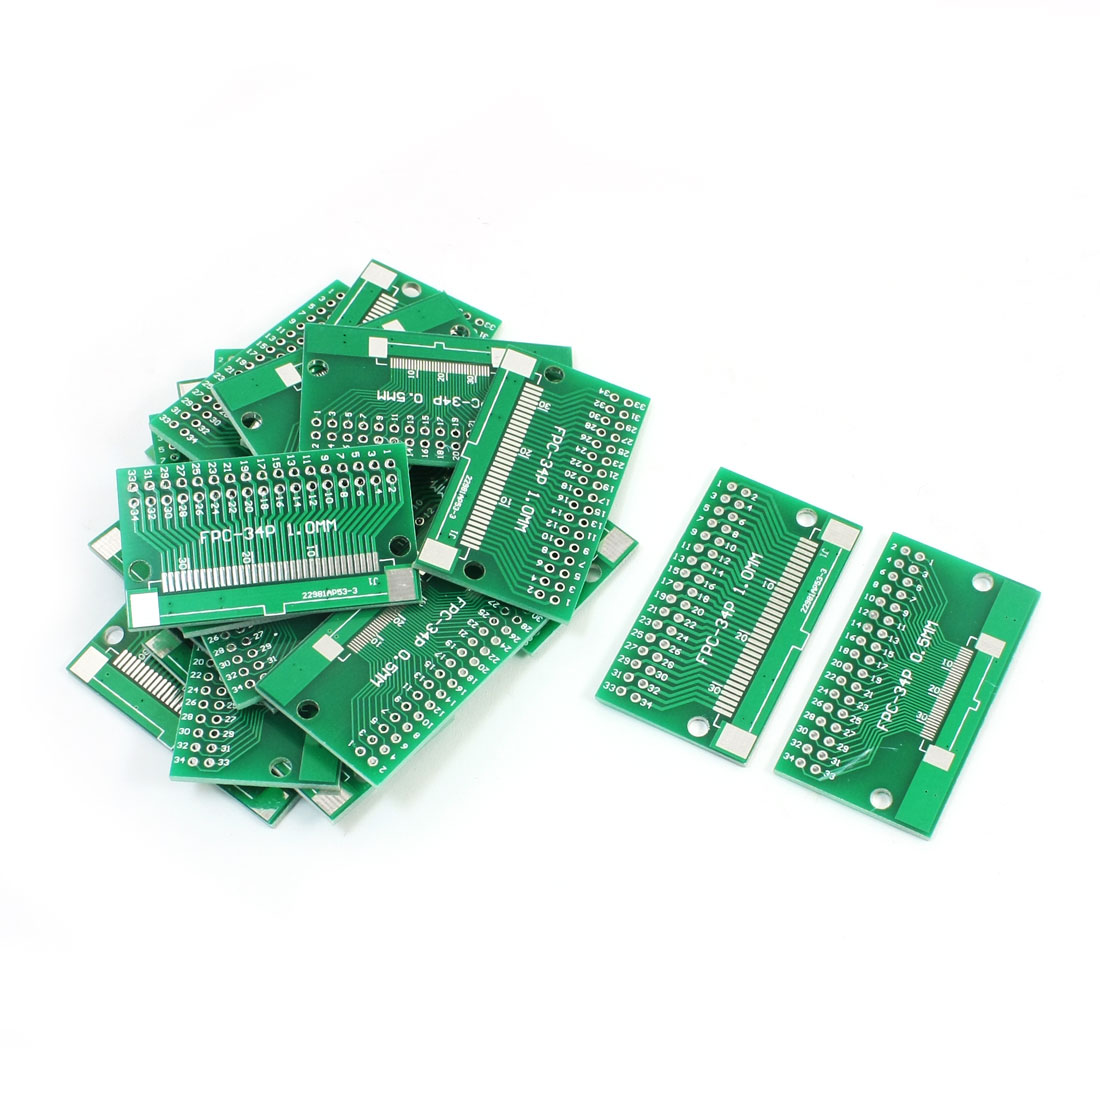 20PCS SMD FPC/FFC-34P 0.5mm 1.0mm IC PCB Adapter Converter 46 x 26mm